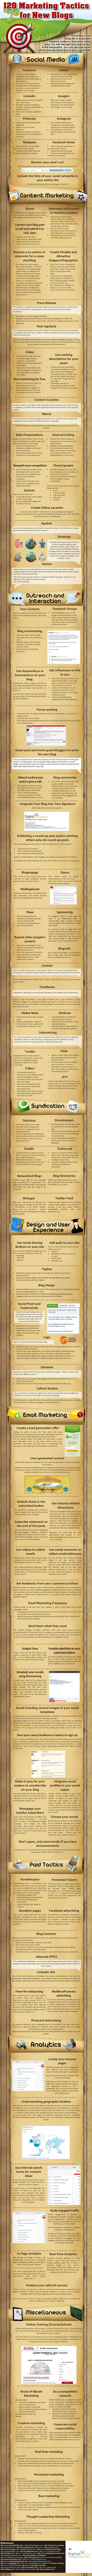 120 Marketing Tactics for New Blogs #infographic (Also helpful for any blogger that wants more readers!)